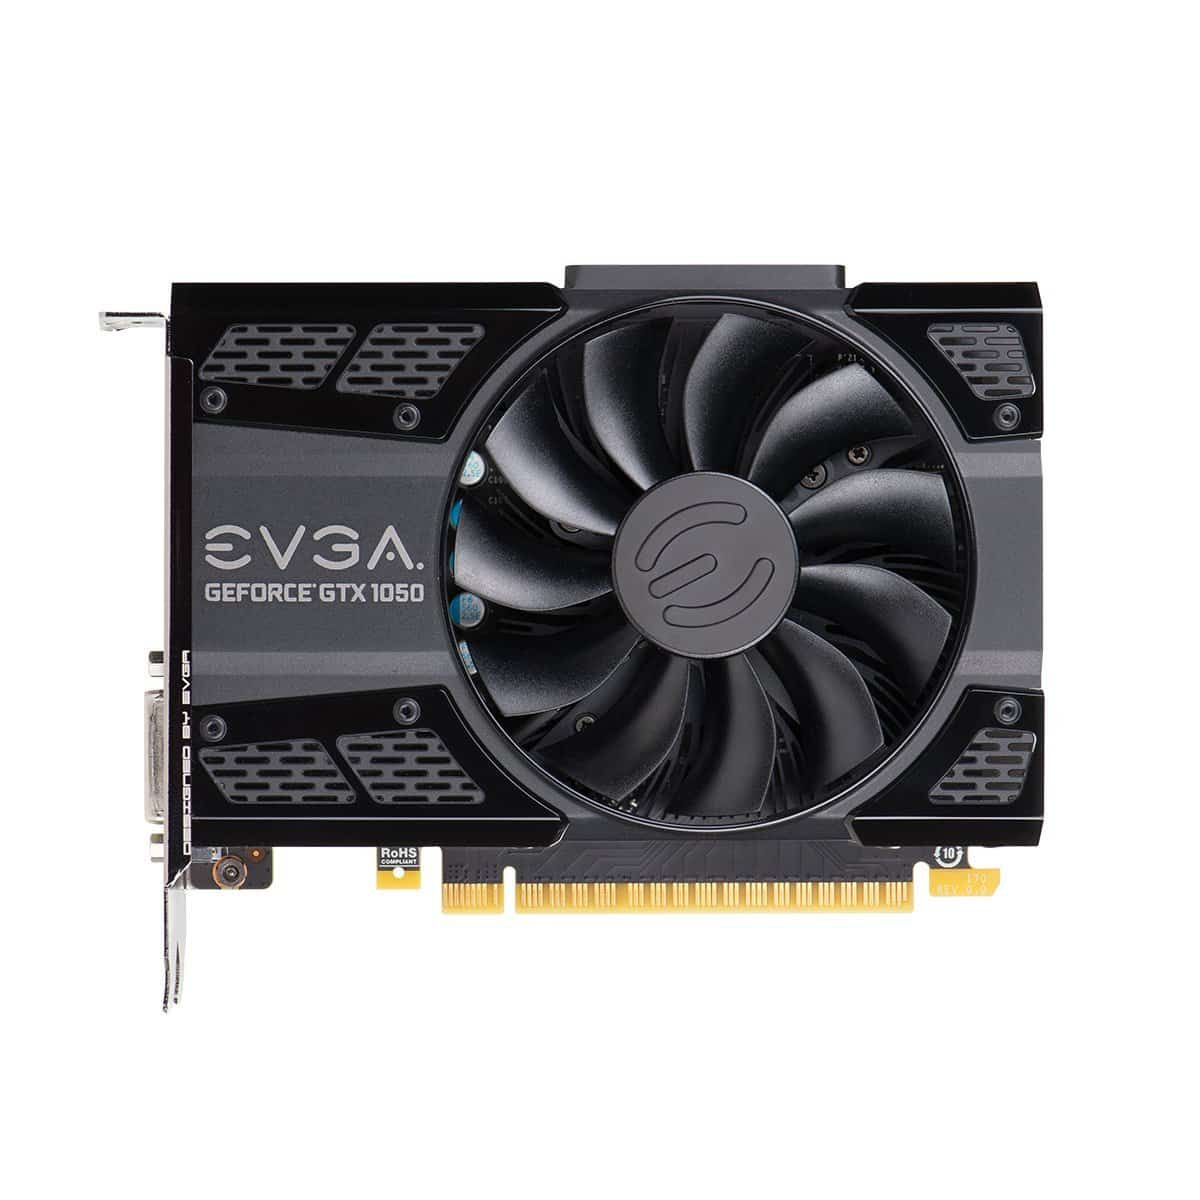 evga geforce gtx 750 ti drivers